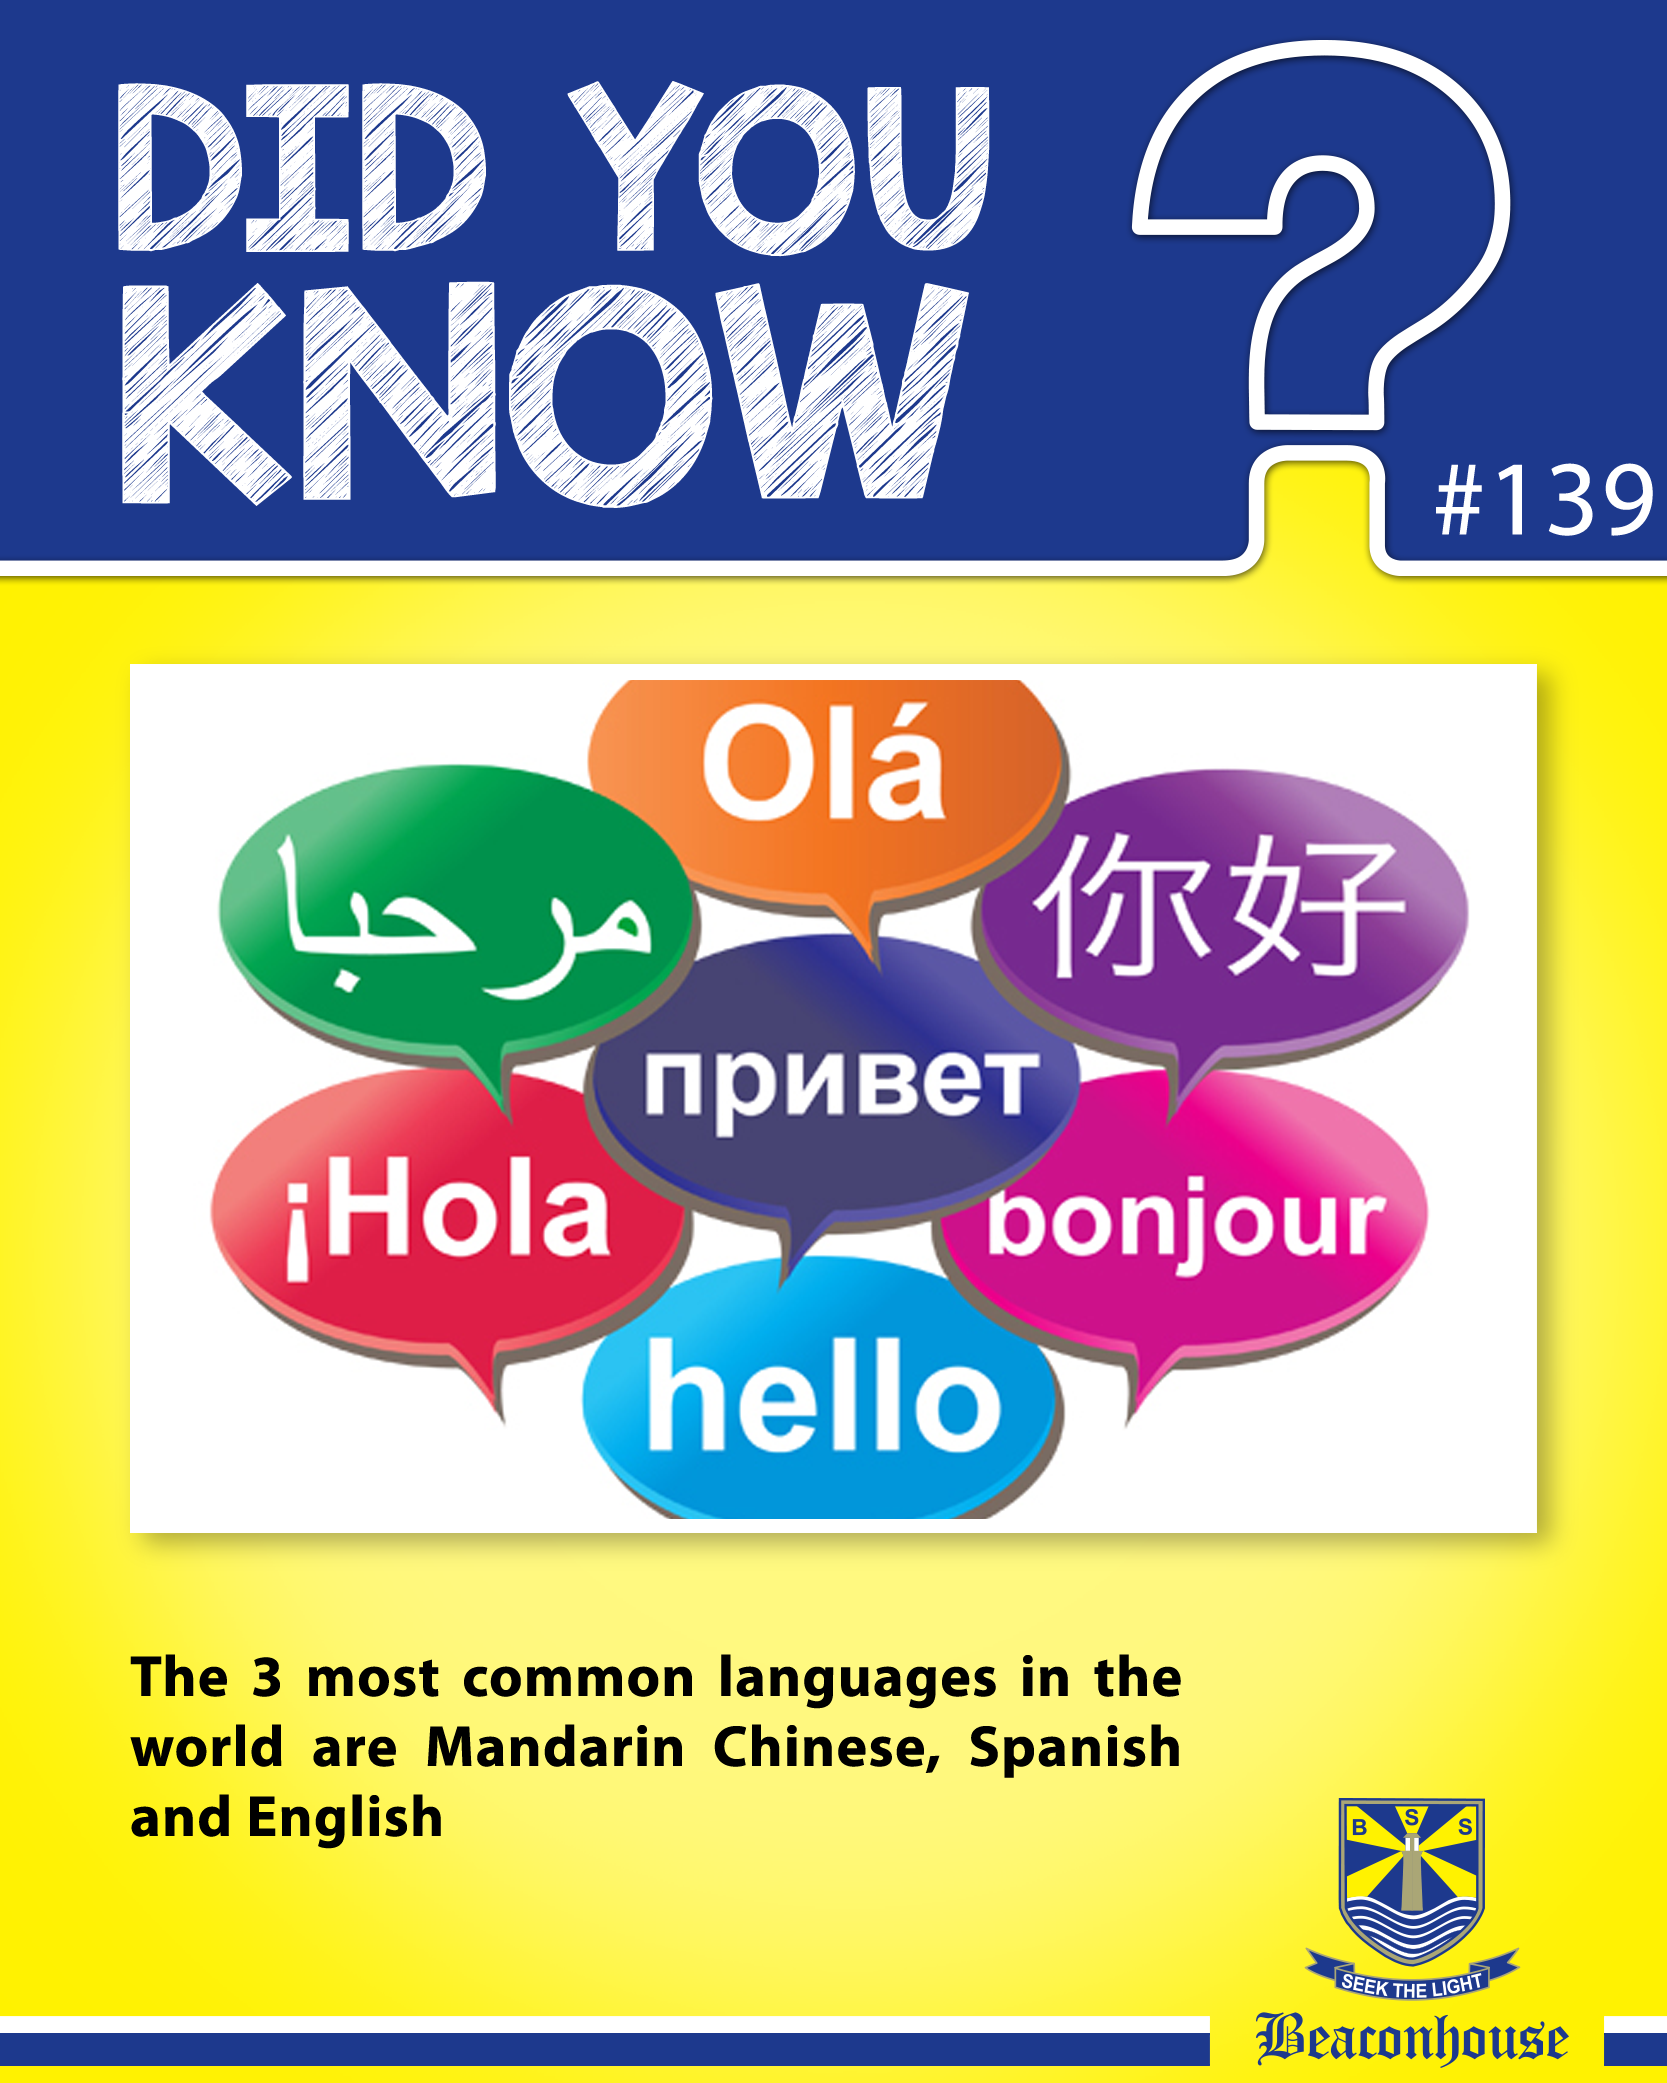 DidYouKnow The Most Common Languages In The World Are - Common languages in the world